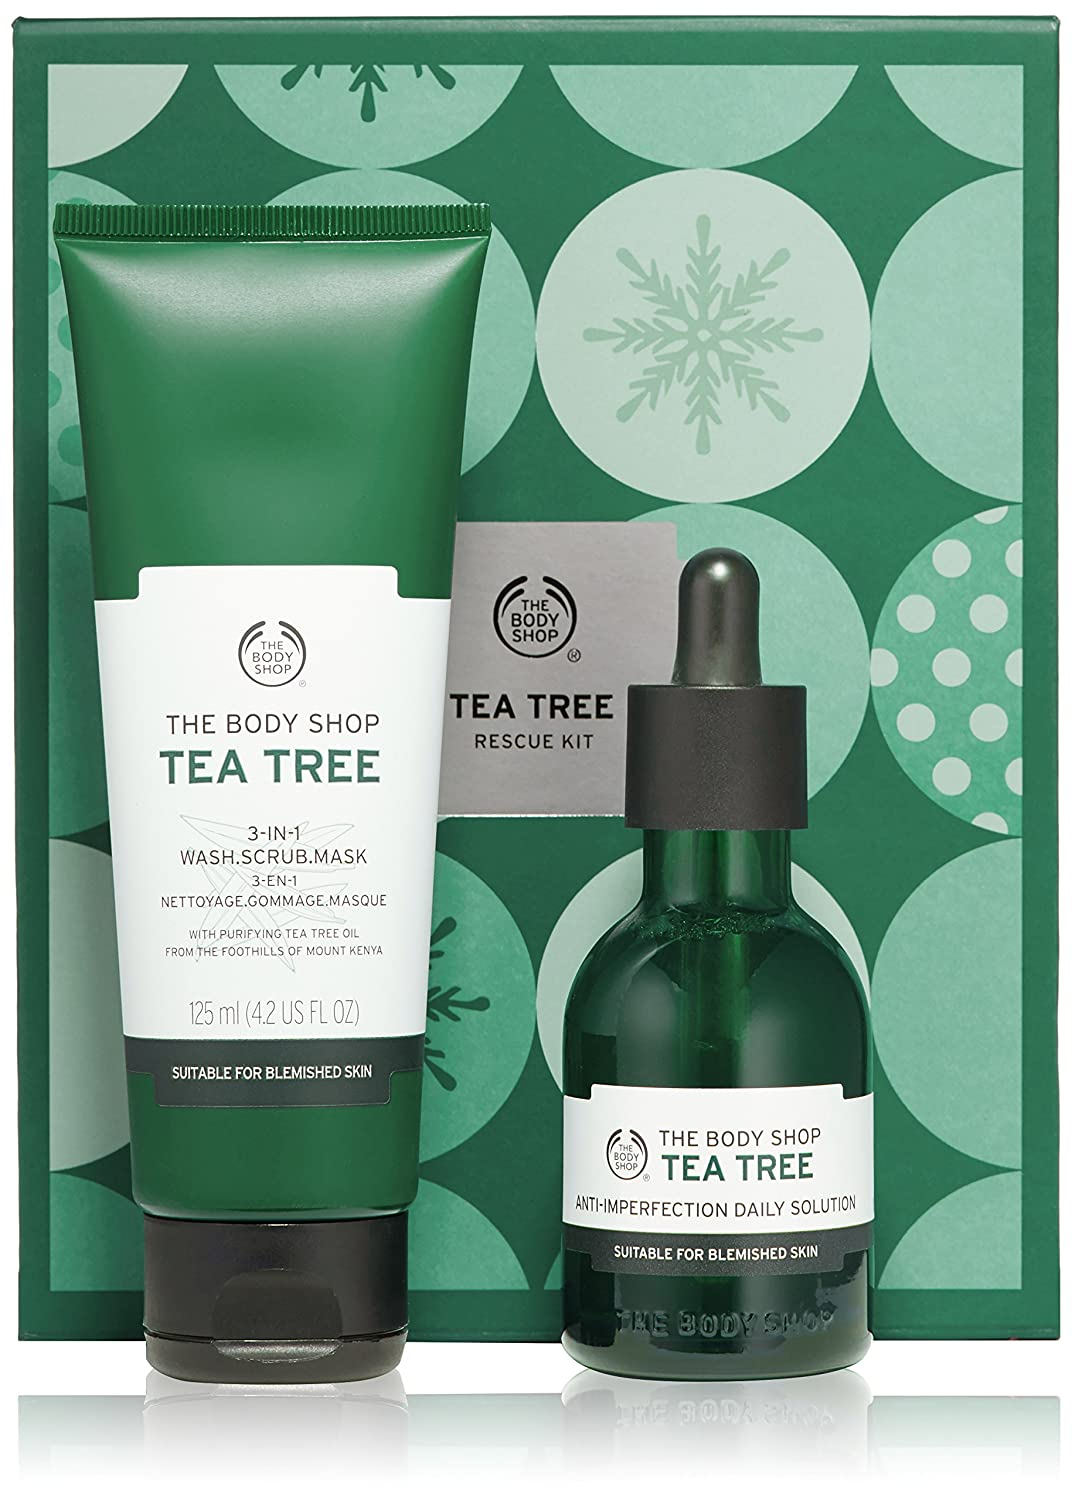 The Body Shop Tea Tree 3-in-1 Wash.Scrub.Mask, Made with Tea Tree Oil, 4.2 Fl. Oz. Buth-na-Bodhaige Inc d/b/a The Body Shop 1096941